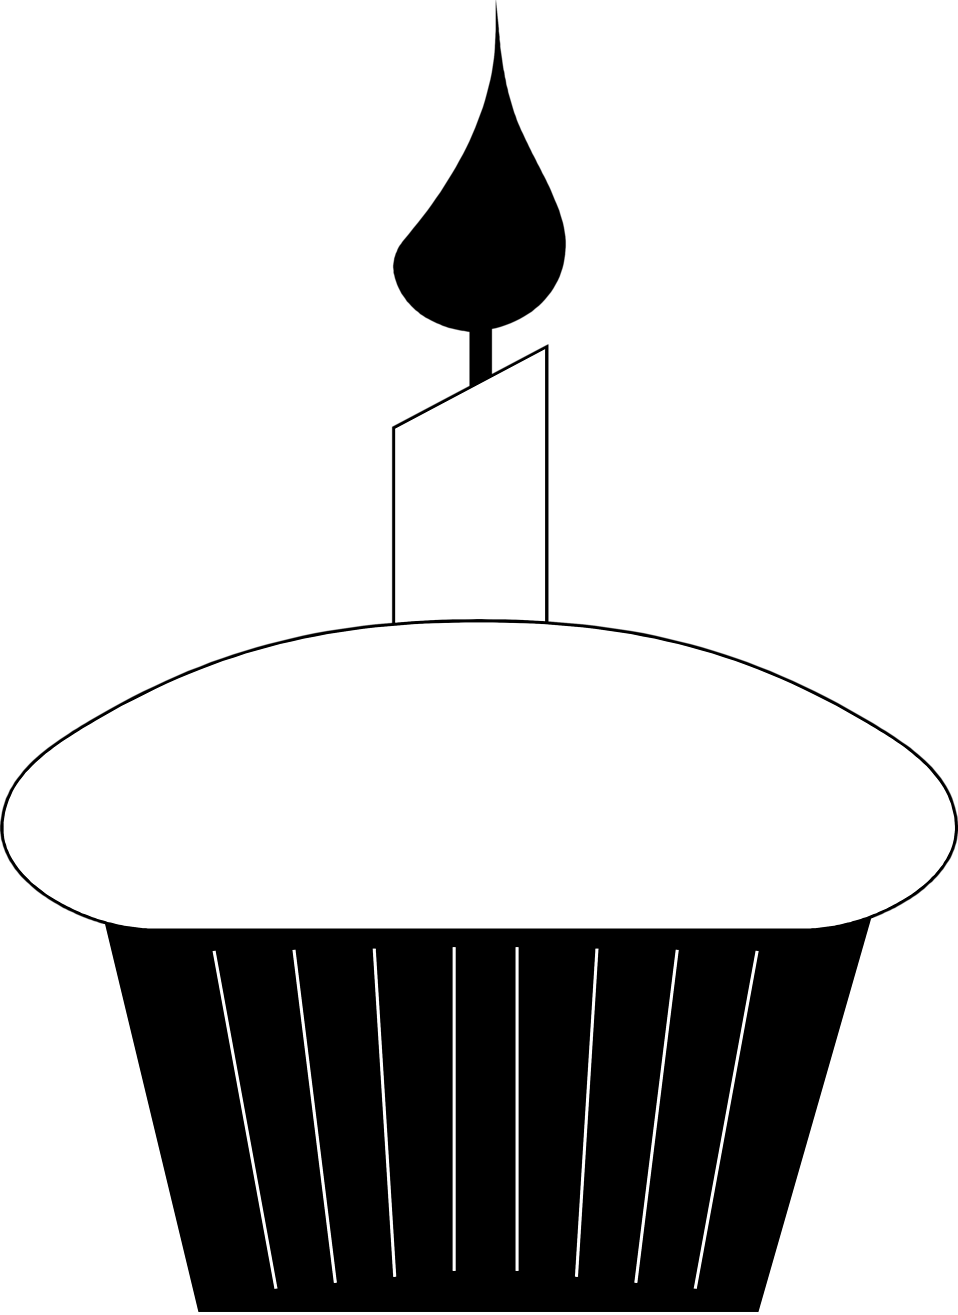 Illustration of a cupcake with a candle : Free Stock Photo